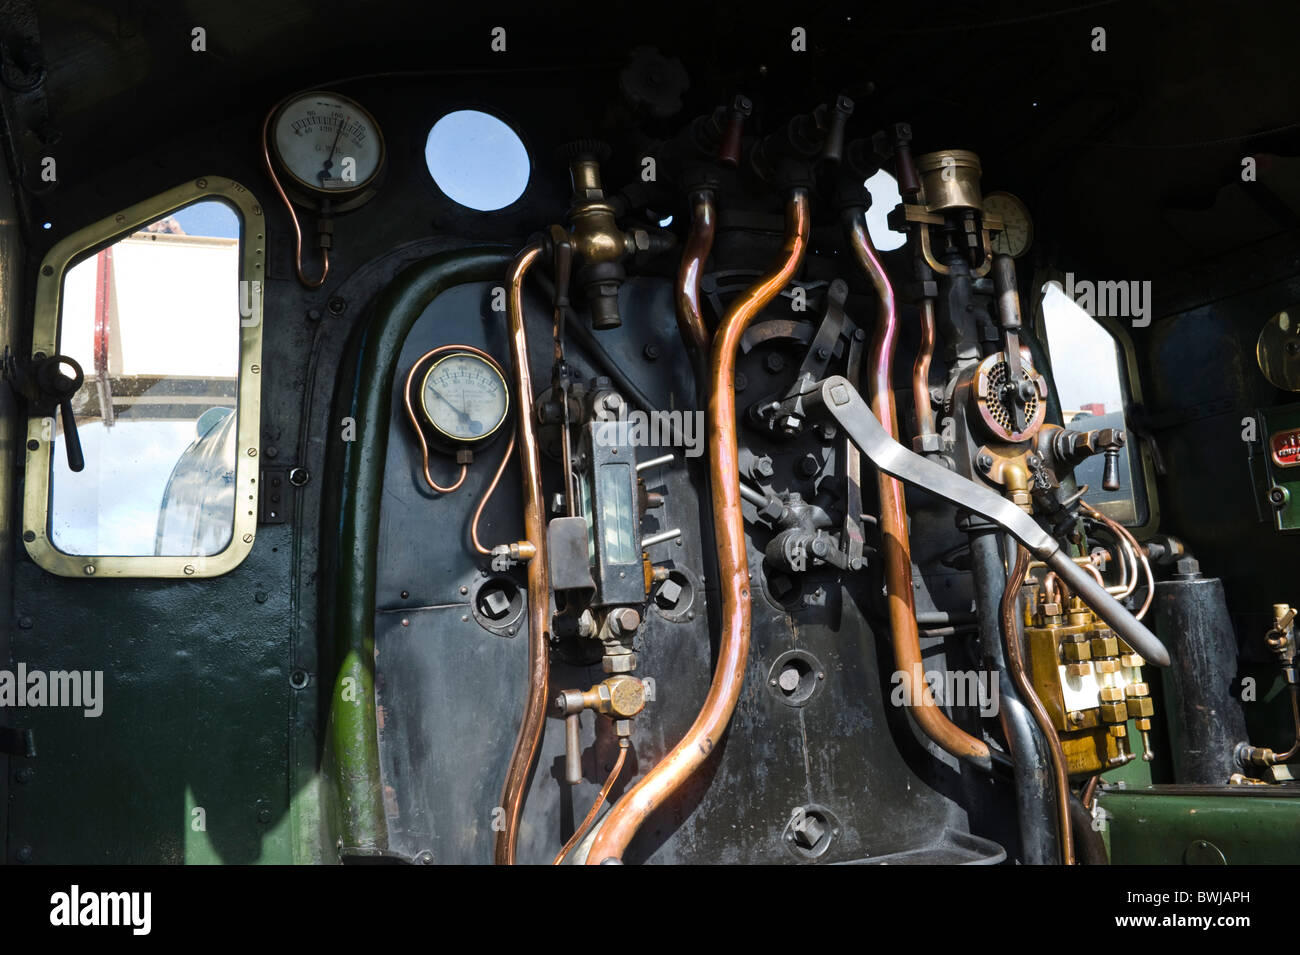 First Class Lever Stock Photos & First Class Lever Stock Images - Alamy